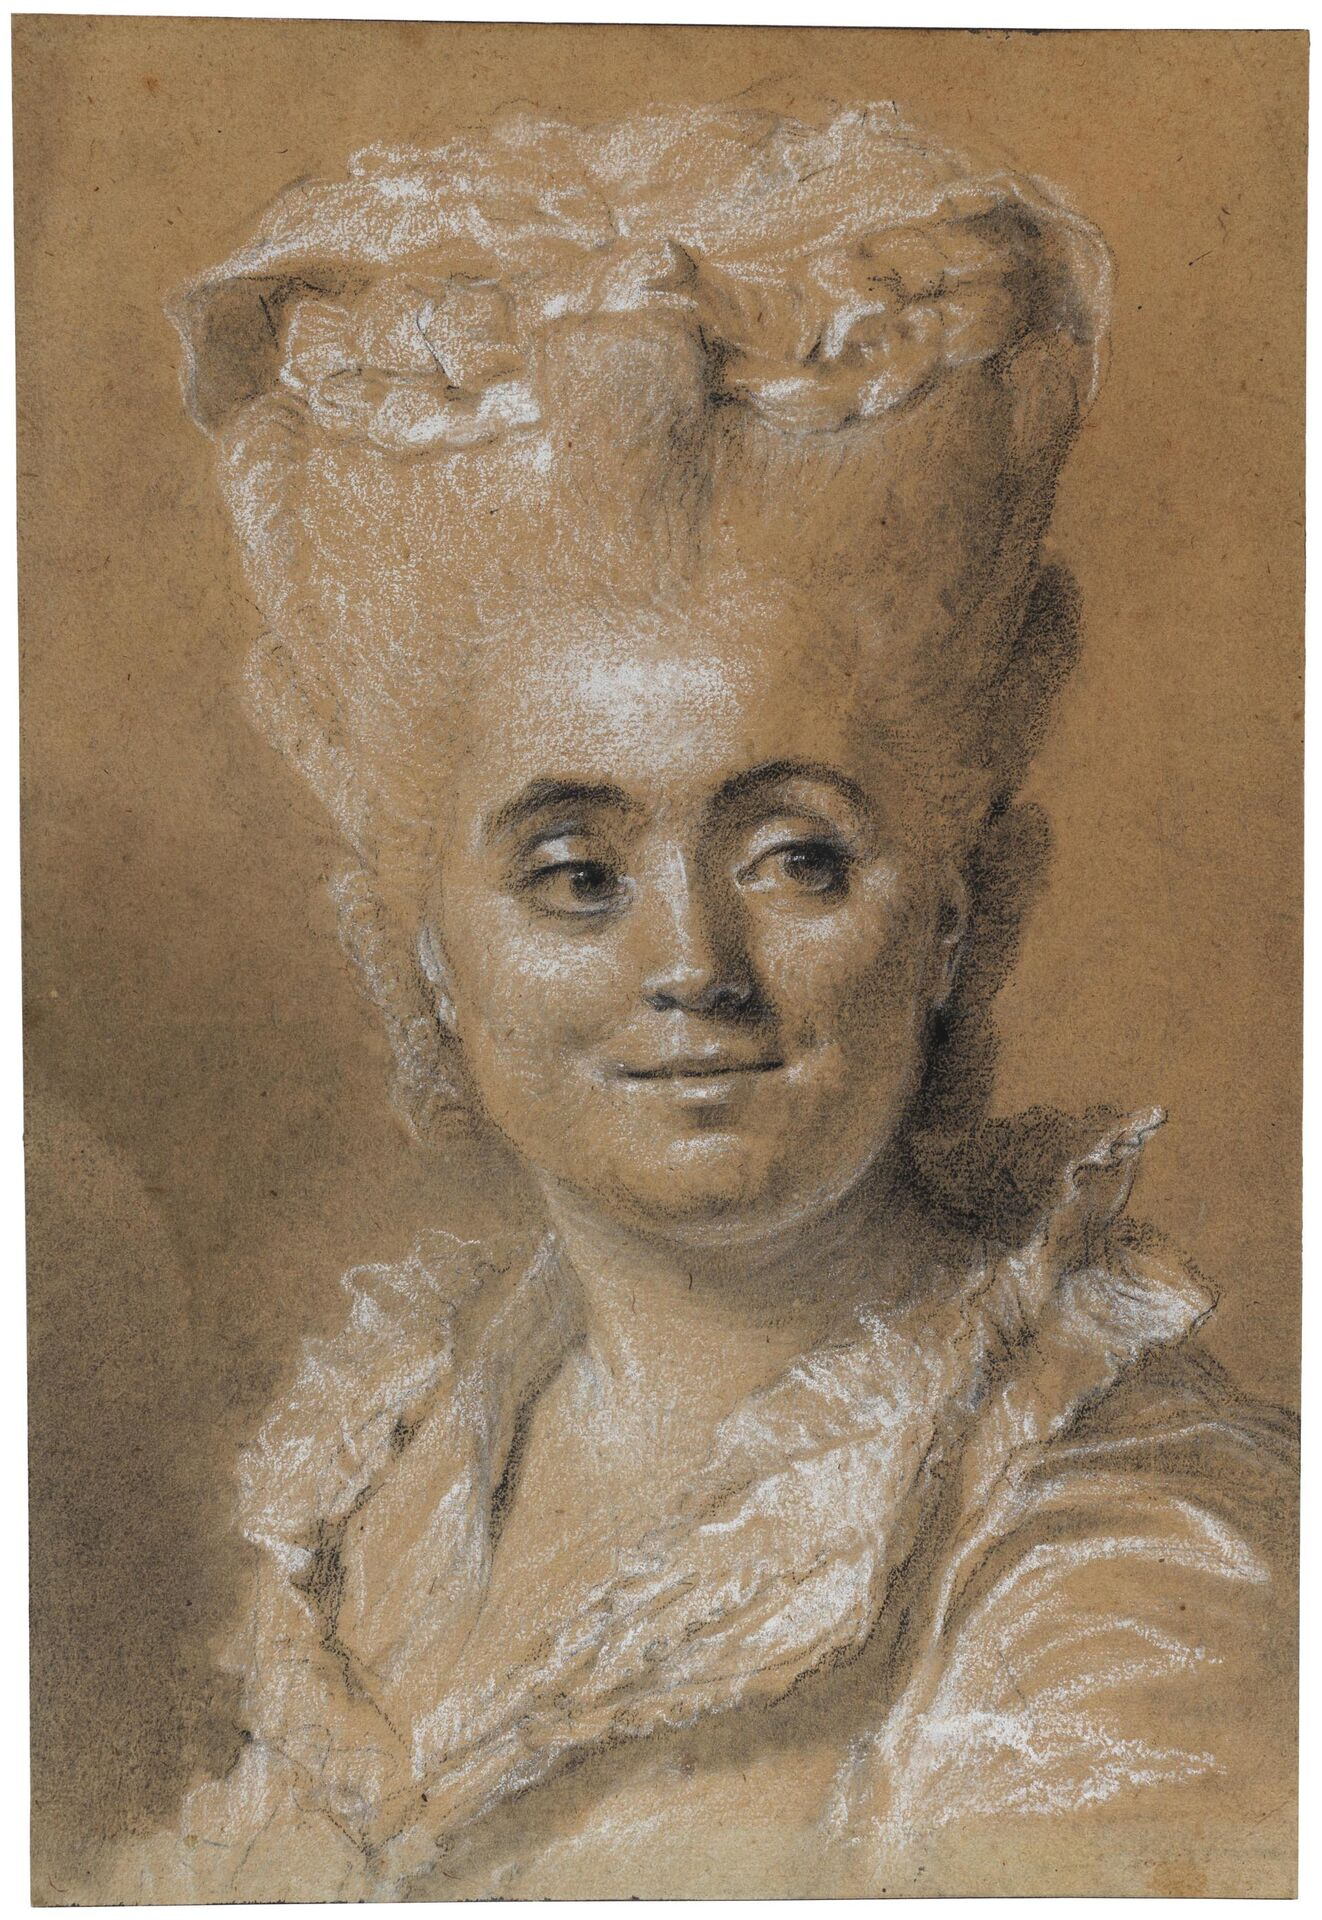 Johann-Ernst Heinsius, Portrait of a Woman Looking to the Right. Photo: Cecilia Heisser/Nationalmuseum.